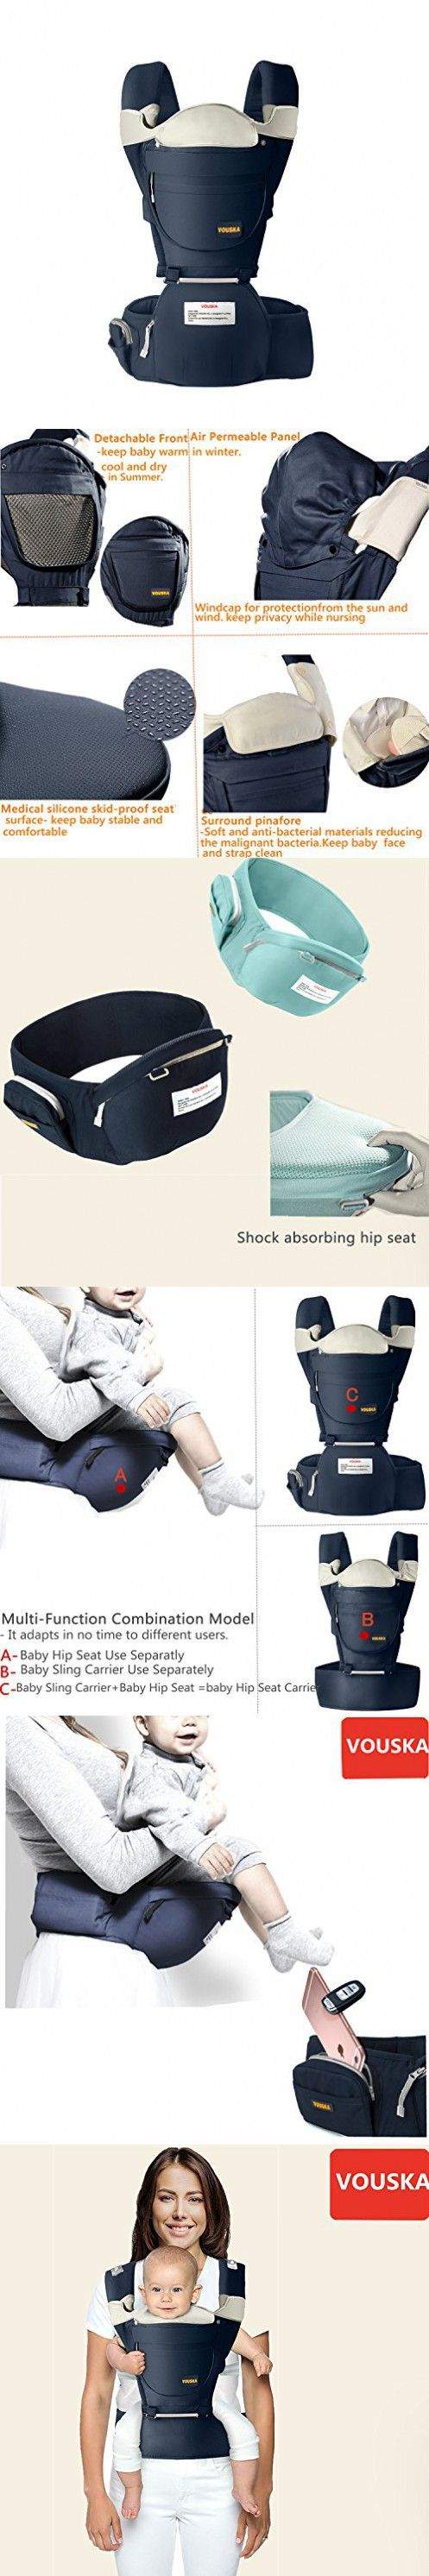 Baby Carrier,Baby Carriers Front and Back -The COMPLETE All Seasons 360 Ergonomic Baby & Child Carrier with Baby Hip Seat,8 in 1,Newborn to Toddler,2017 New Style By VOUSKA